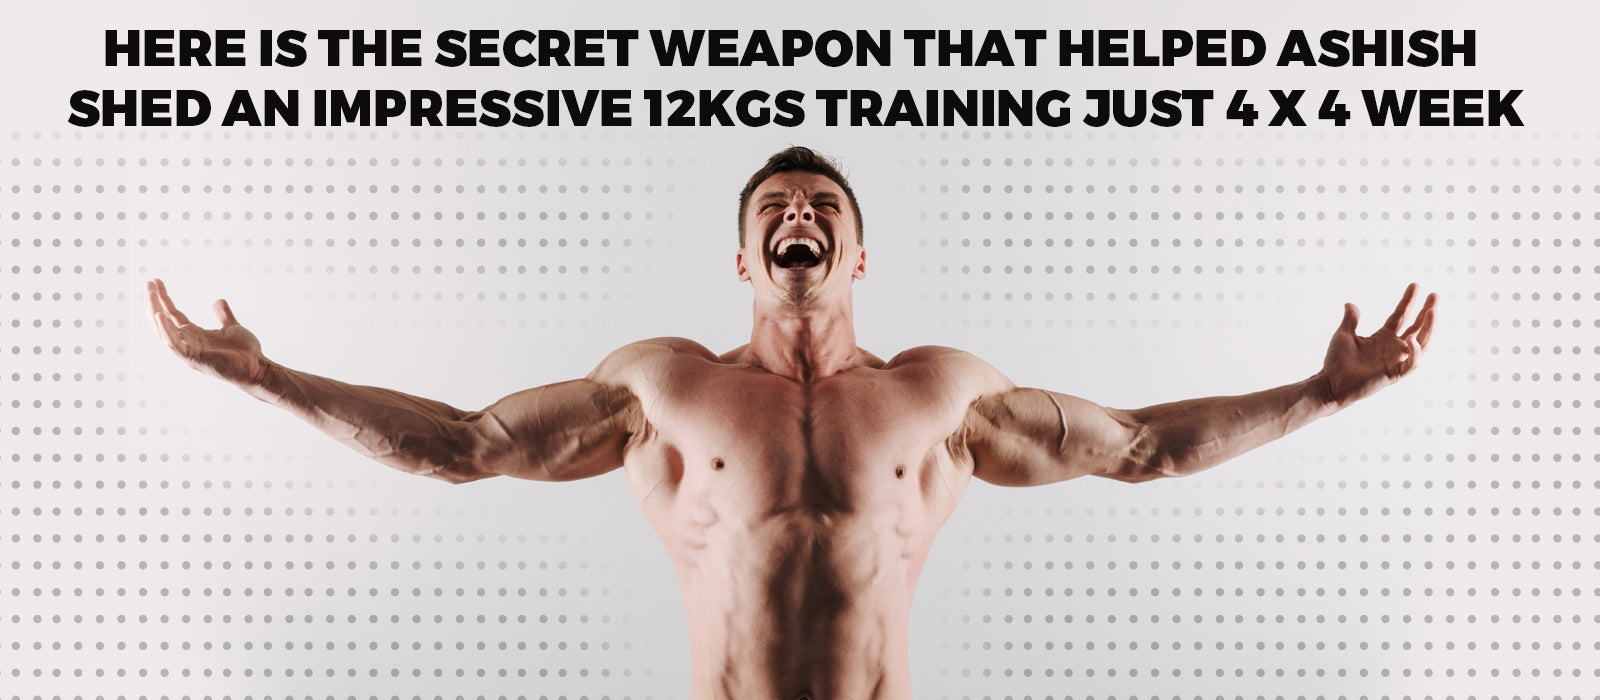 Here IS The Secret Weapon That Helped Ashish Shed An Impressive 12KGs Training Just 4 x 4 Week